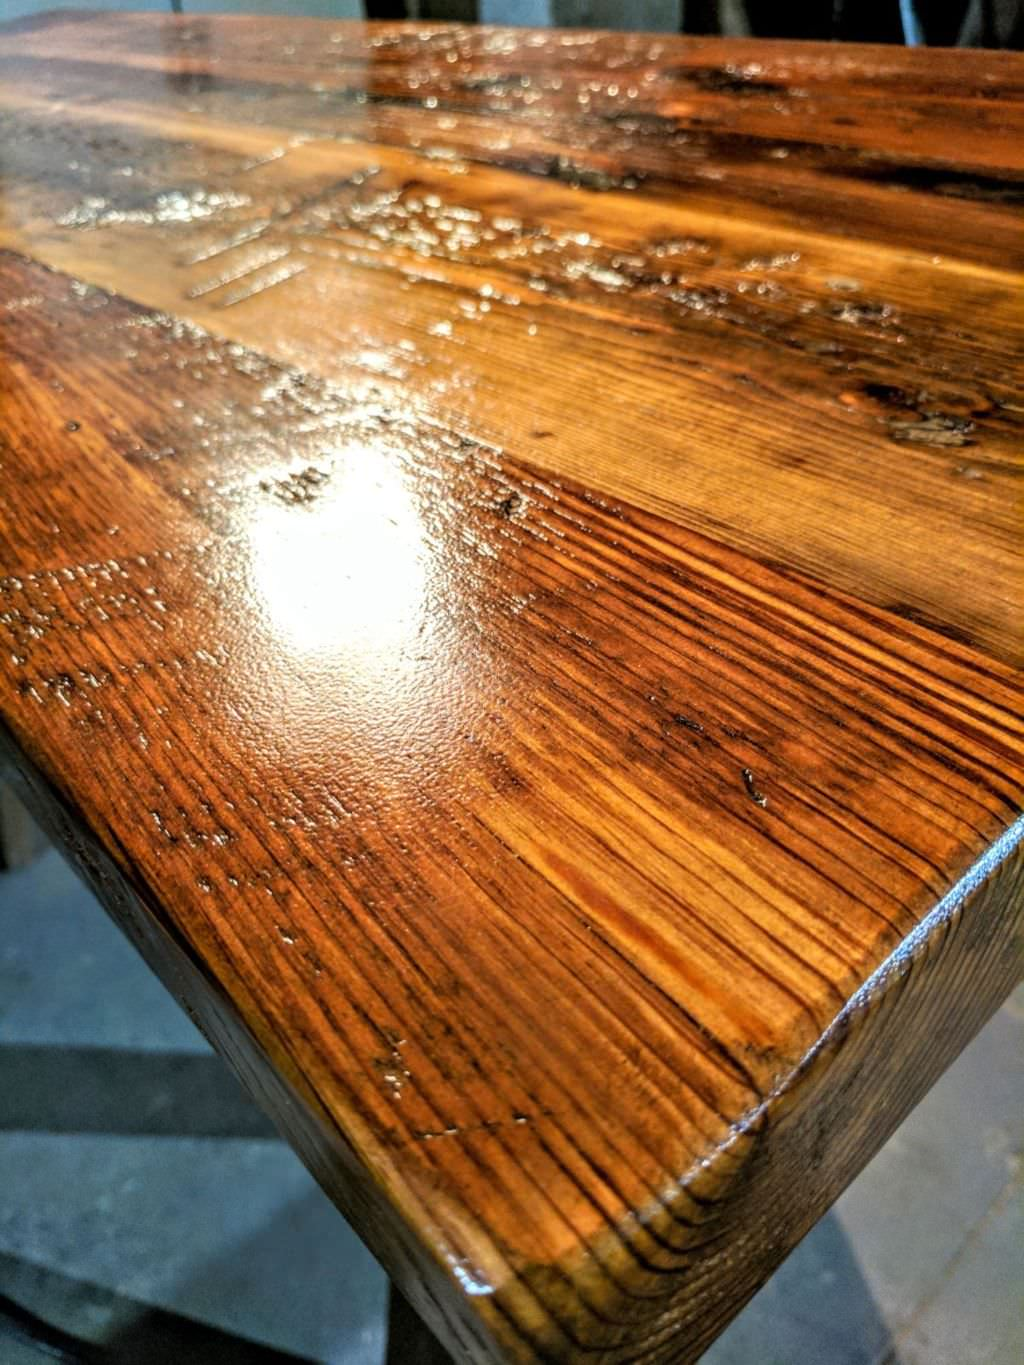 Reclaimed wood - This is a trending style in New York City and Brooklyn, we use reclaimed wood restored from old buildings and farms, to make our reclaimed tables, they have beautiful attributes and character.